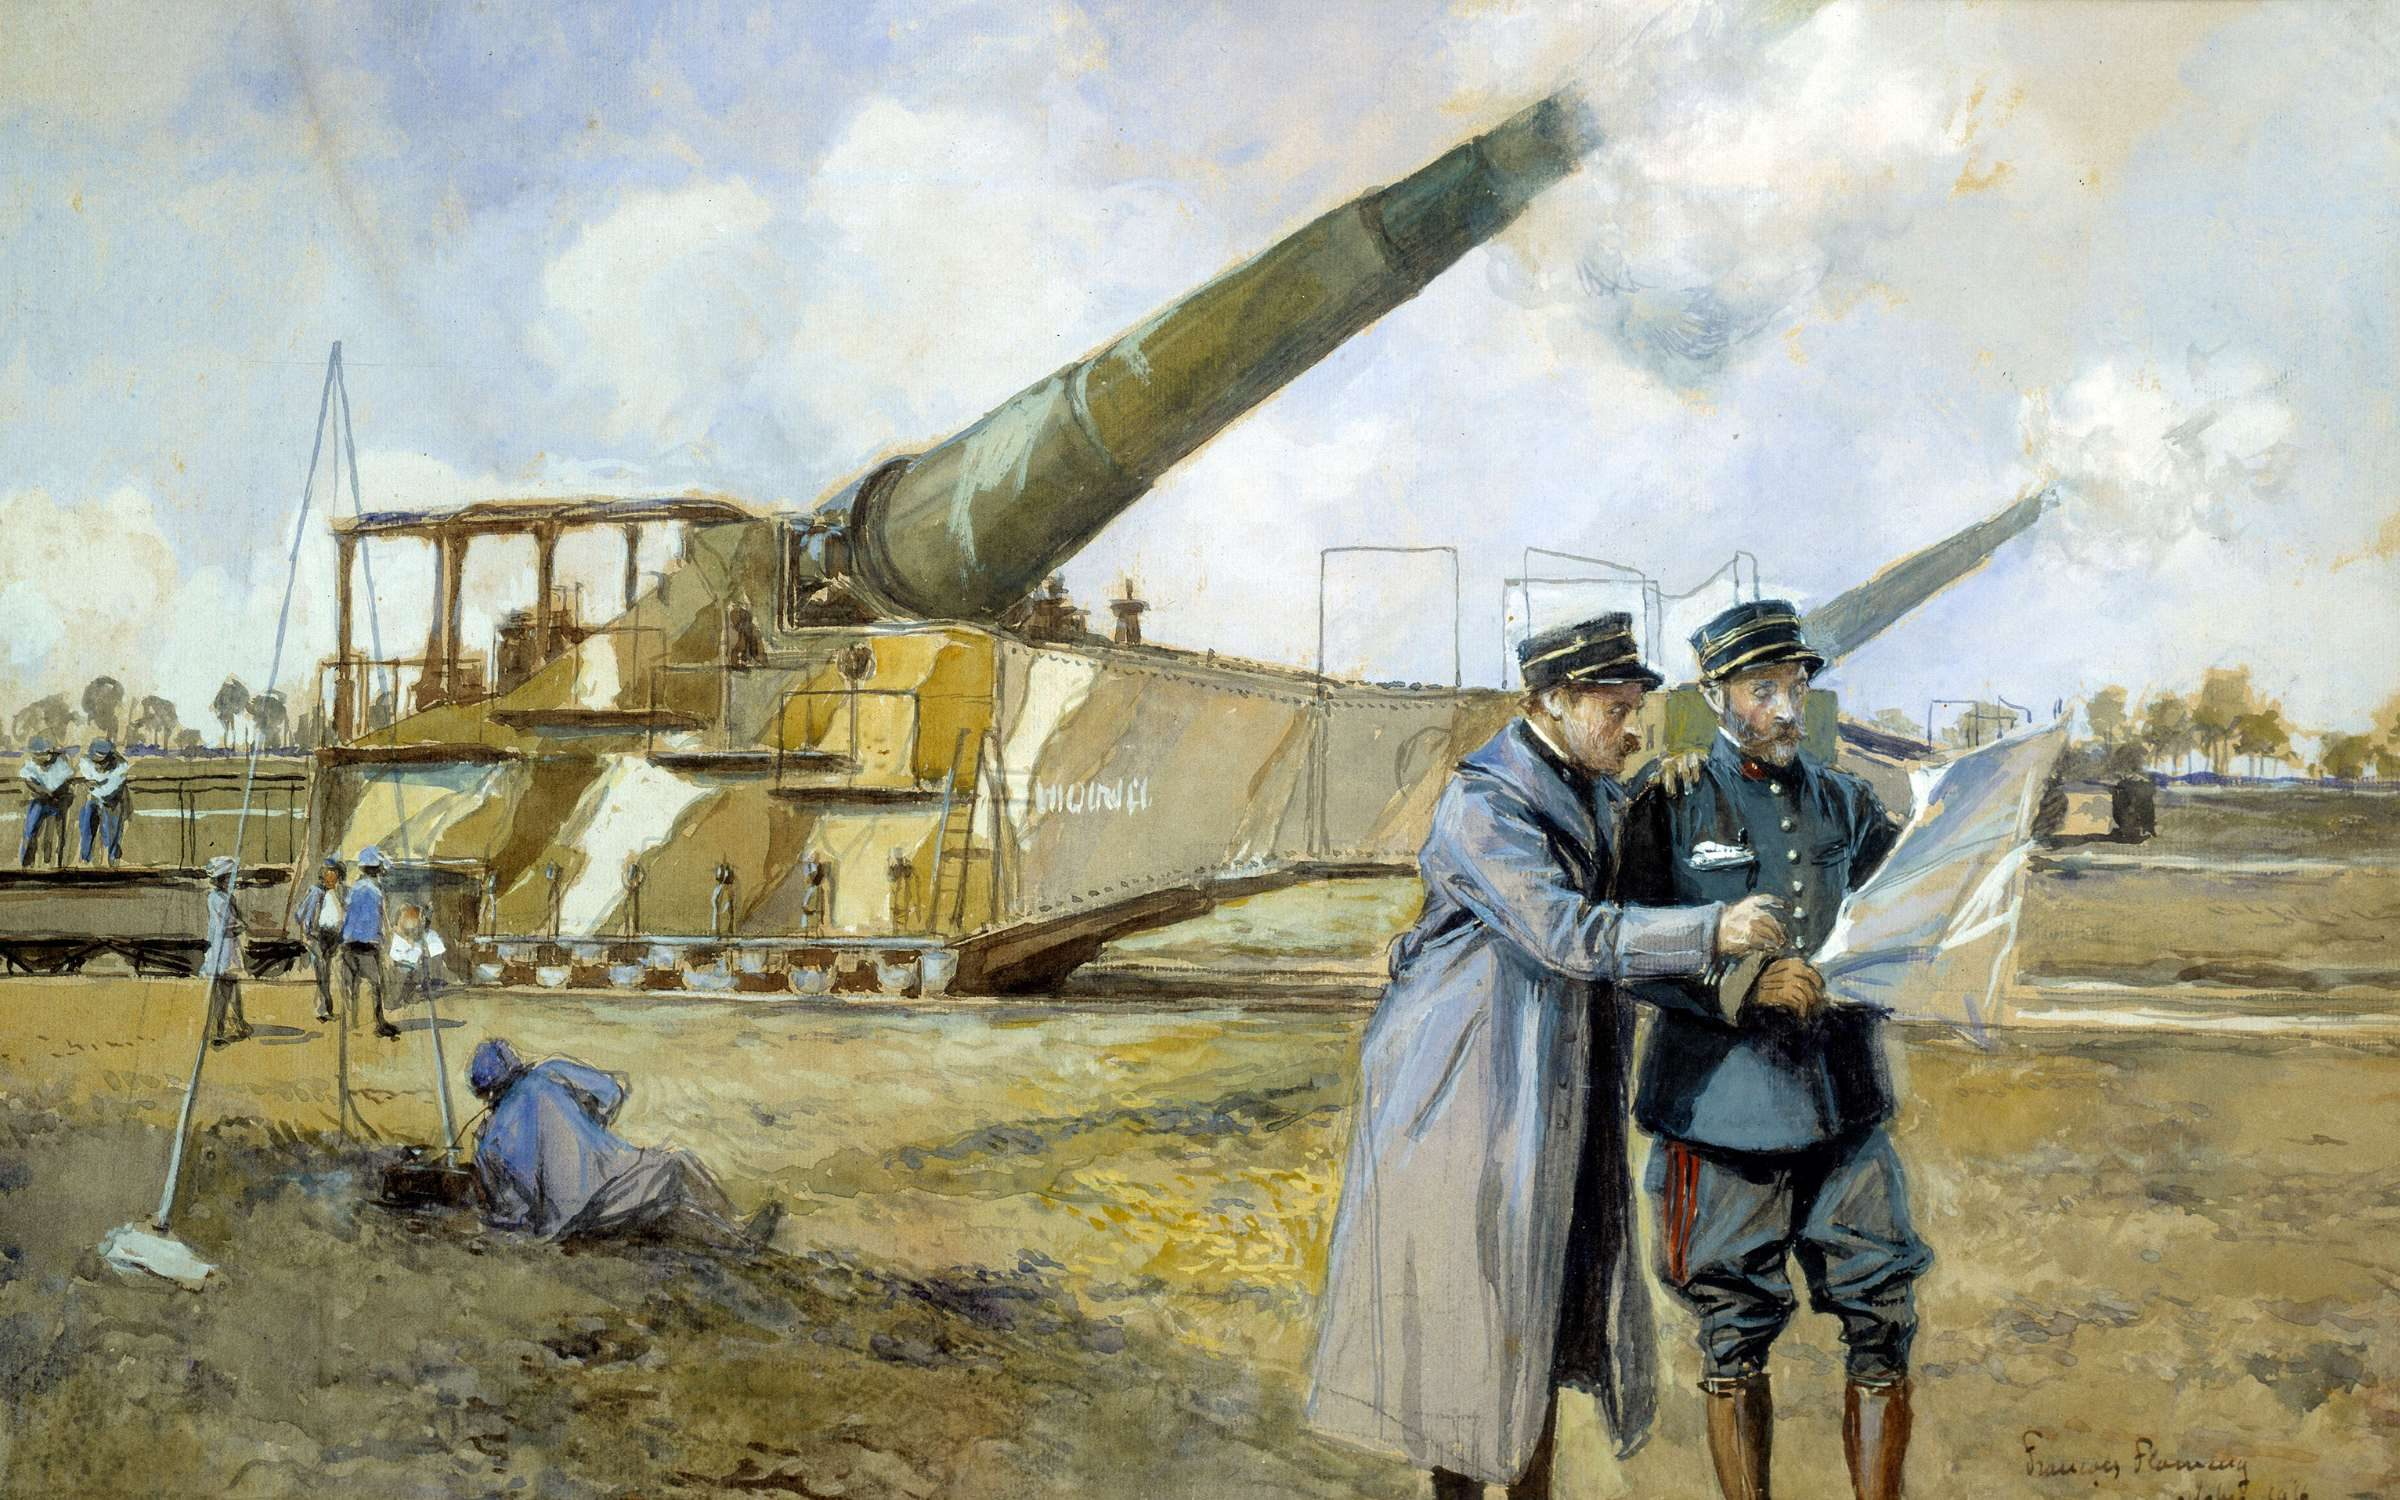 First World War Commanders looking at a battle plan. Painting by Francois Flameng (1856-1923), 1916. Army Museum, Paris. Credit: Leemage/Corbis via Getty Images